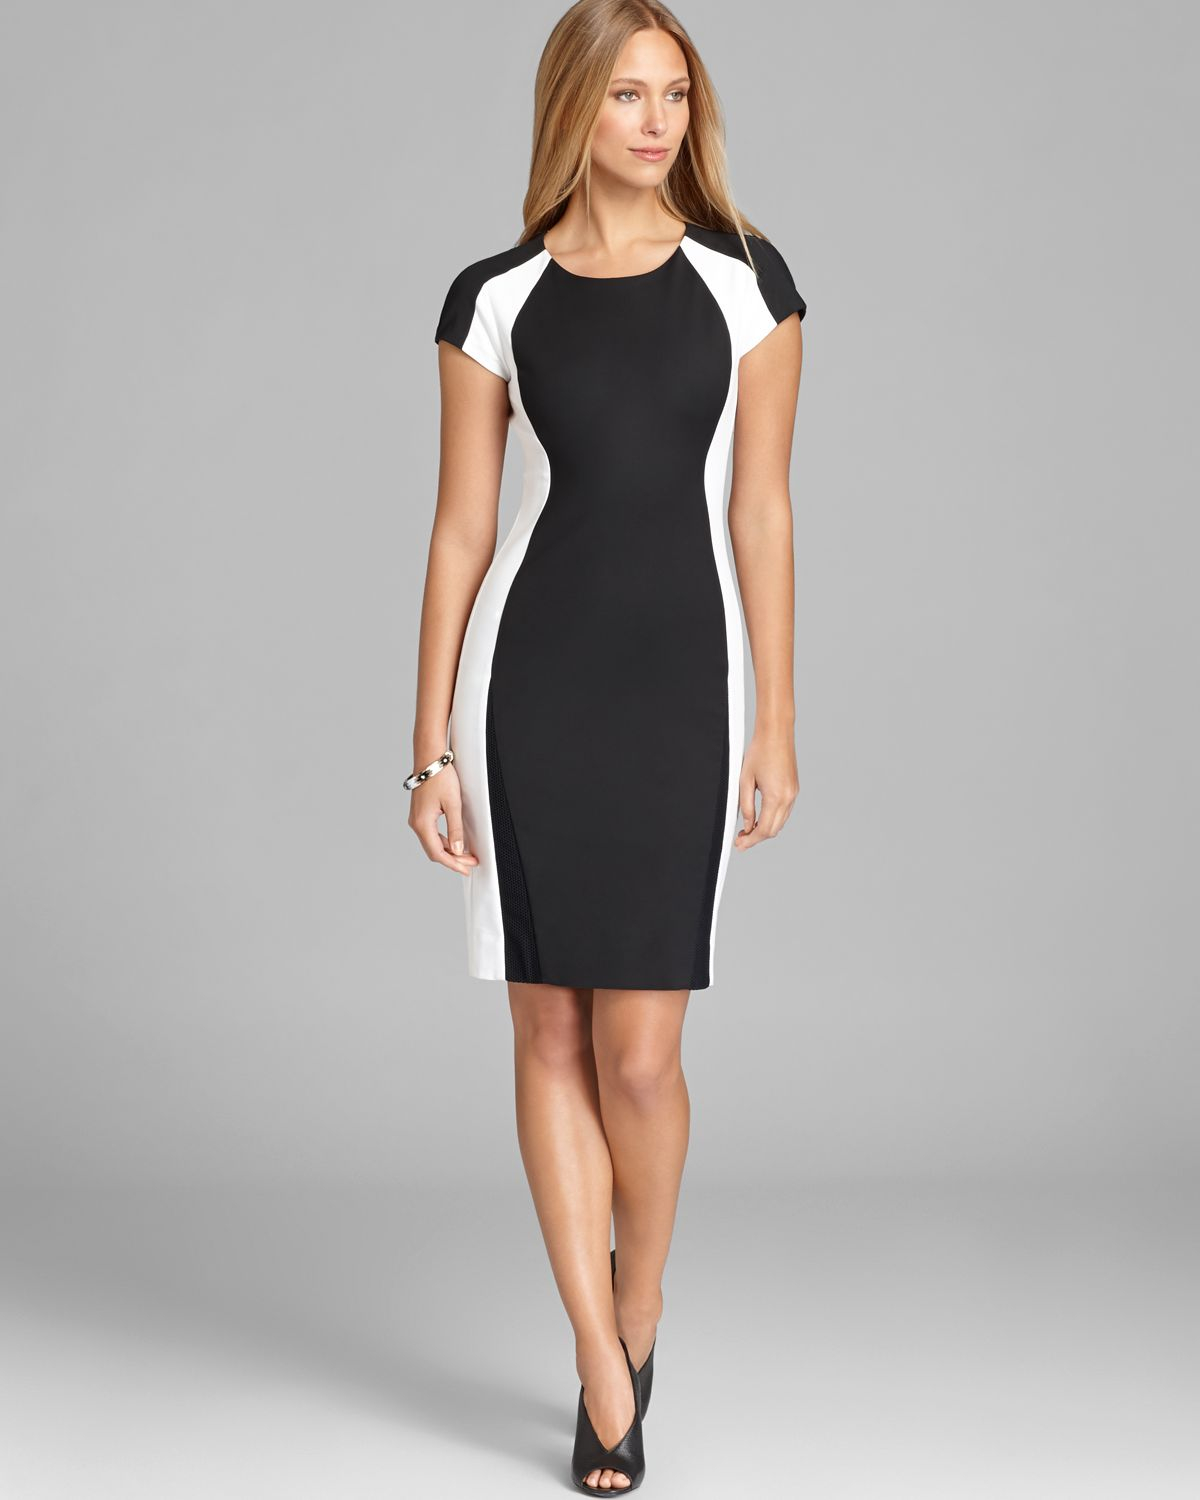 Cool Sexy Women S Jewel Neck Long Sleeve Hollow Out Dress Black White Sexy